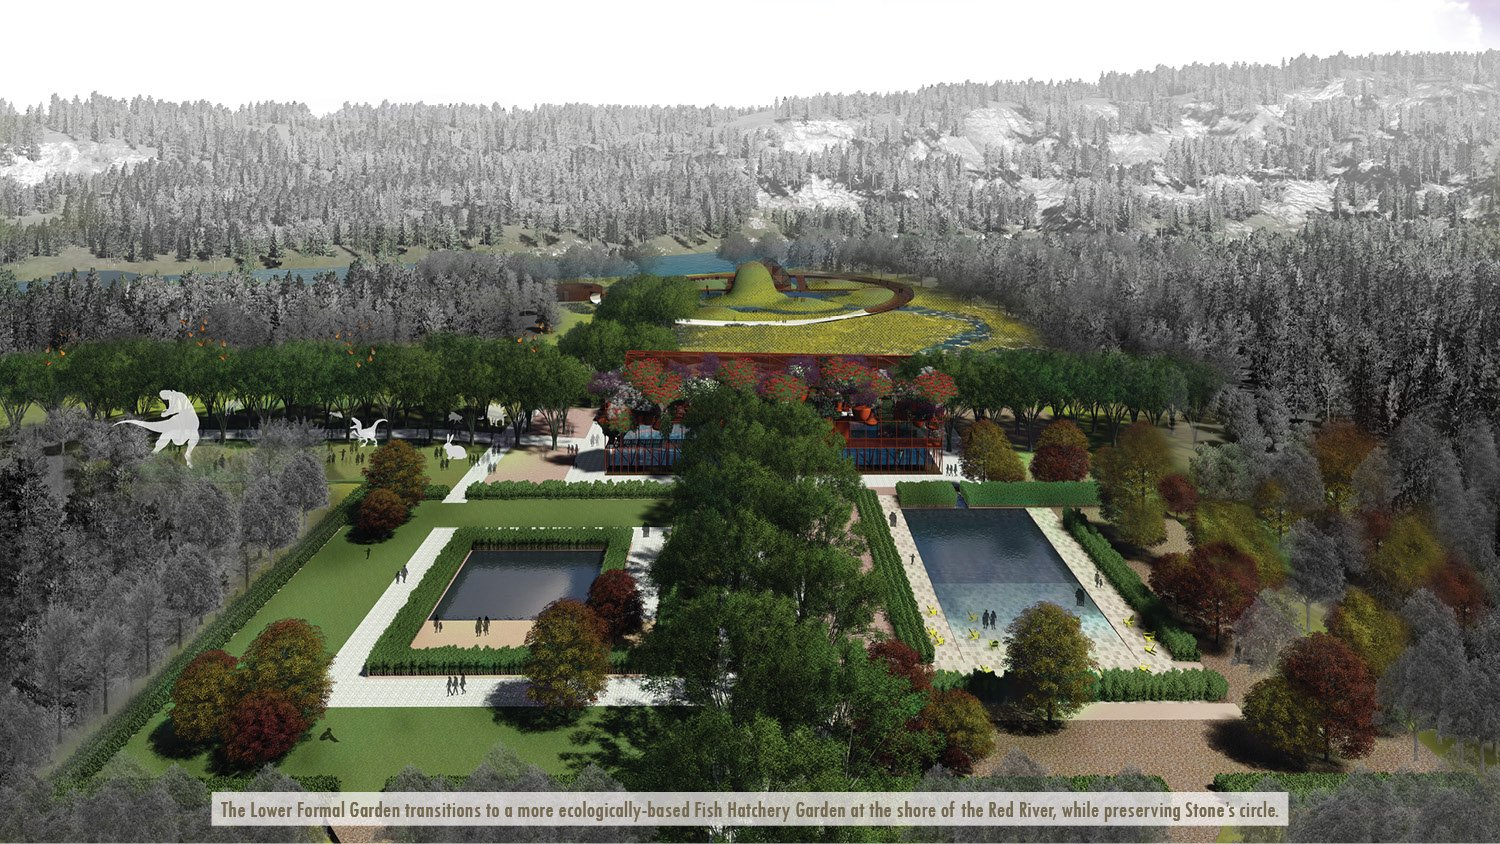 The Lower Formal Garden transitions to a more ecologically-based Fish Hatchery Garden at the shore of the Red River, while preserving Stone's circle. University of Arkansas Community Design Center